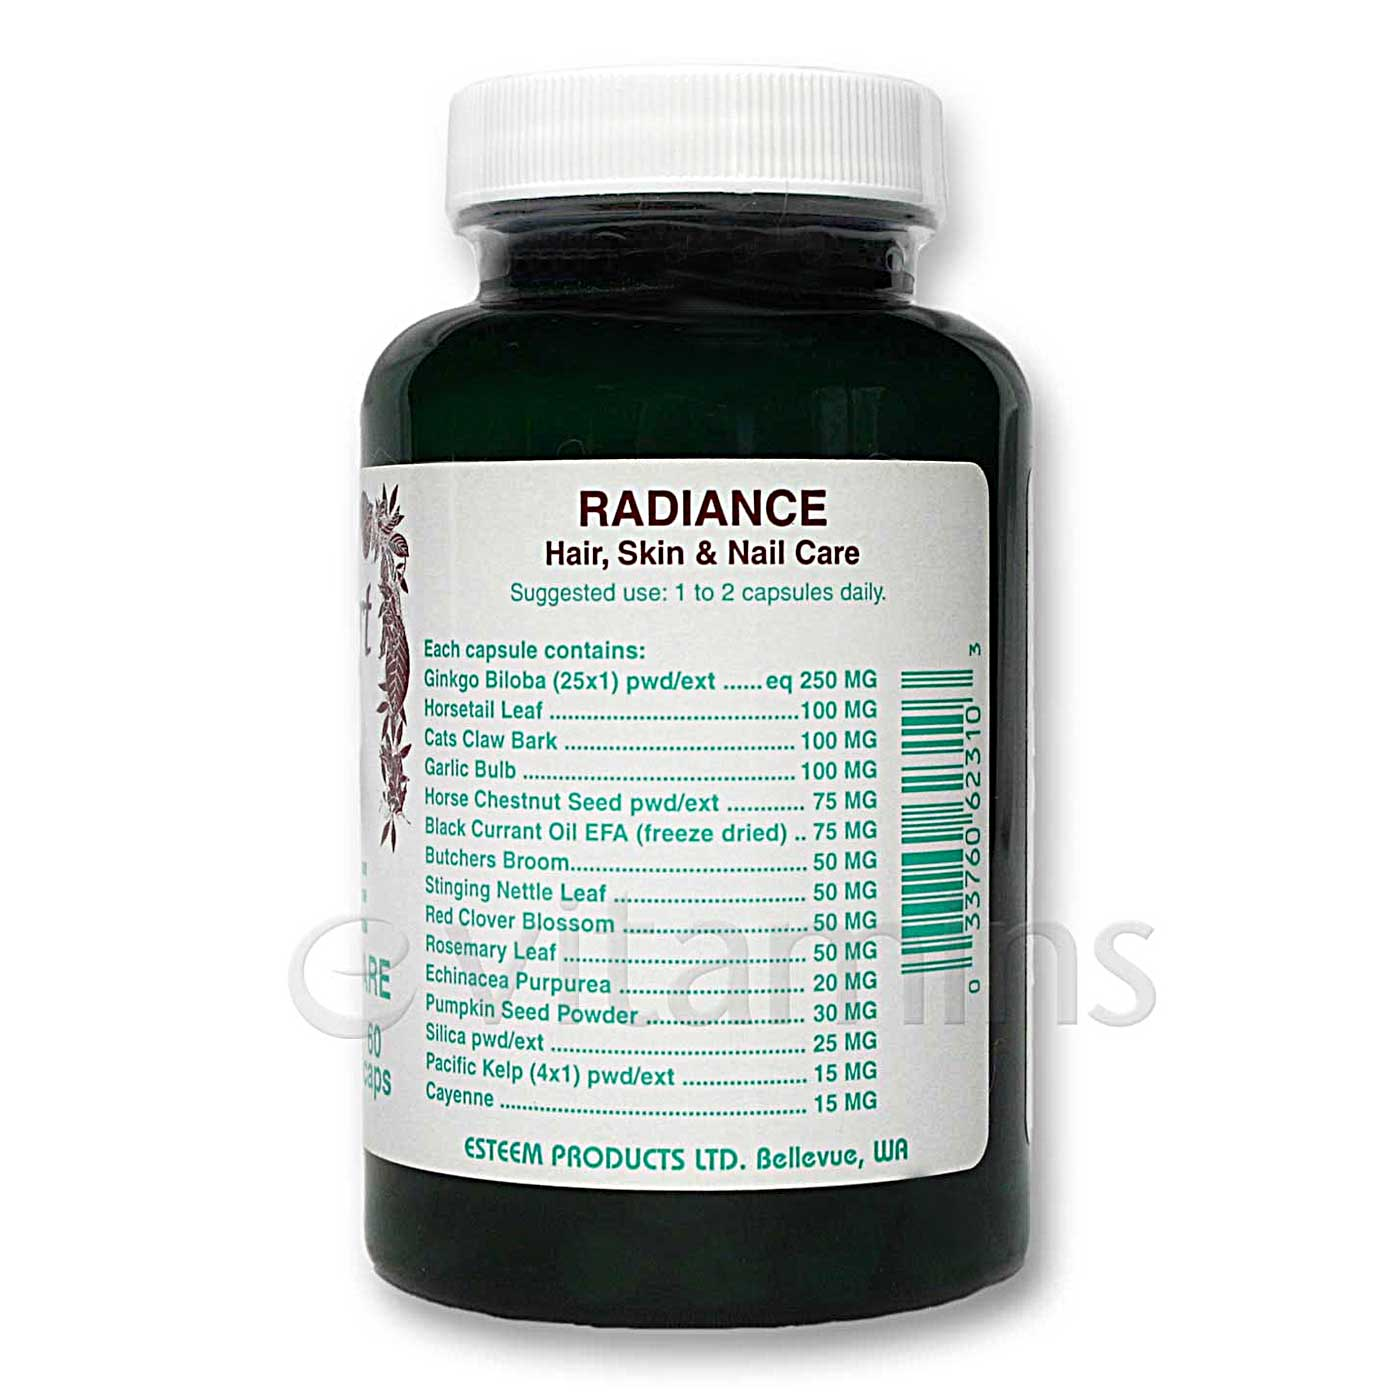 Radiance hair skin and nails